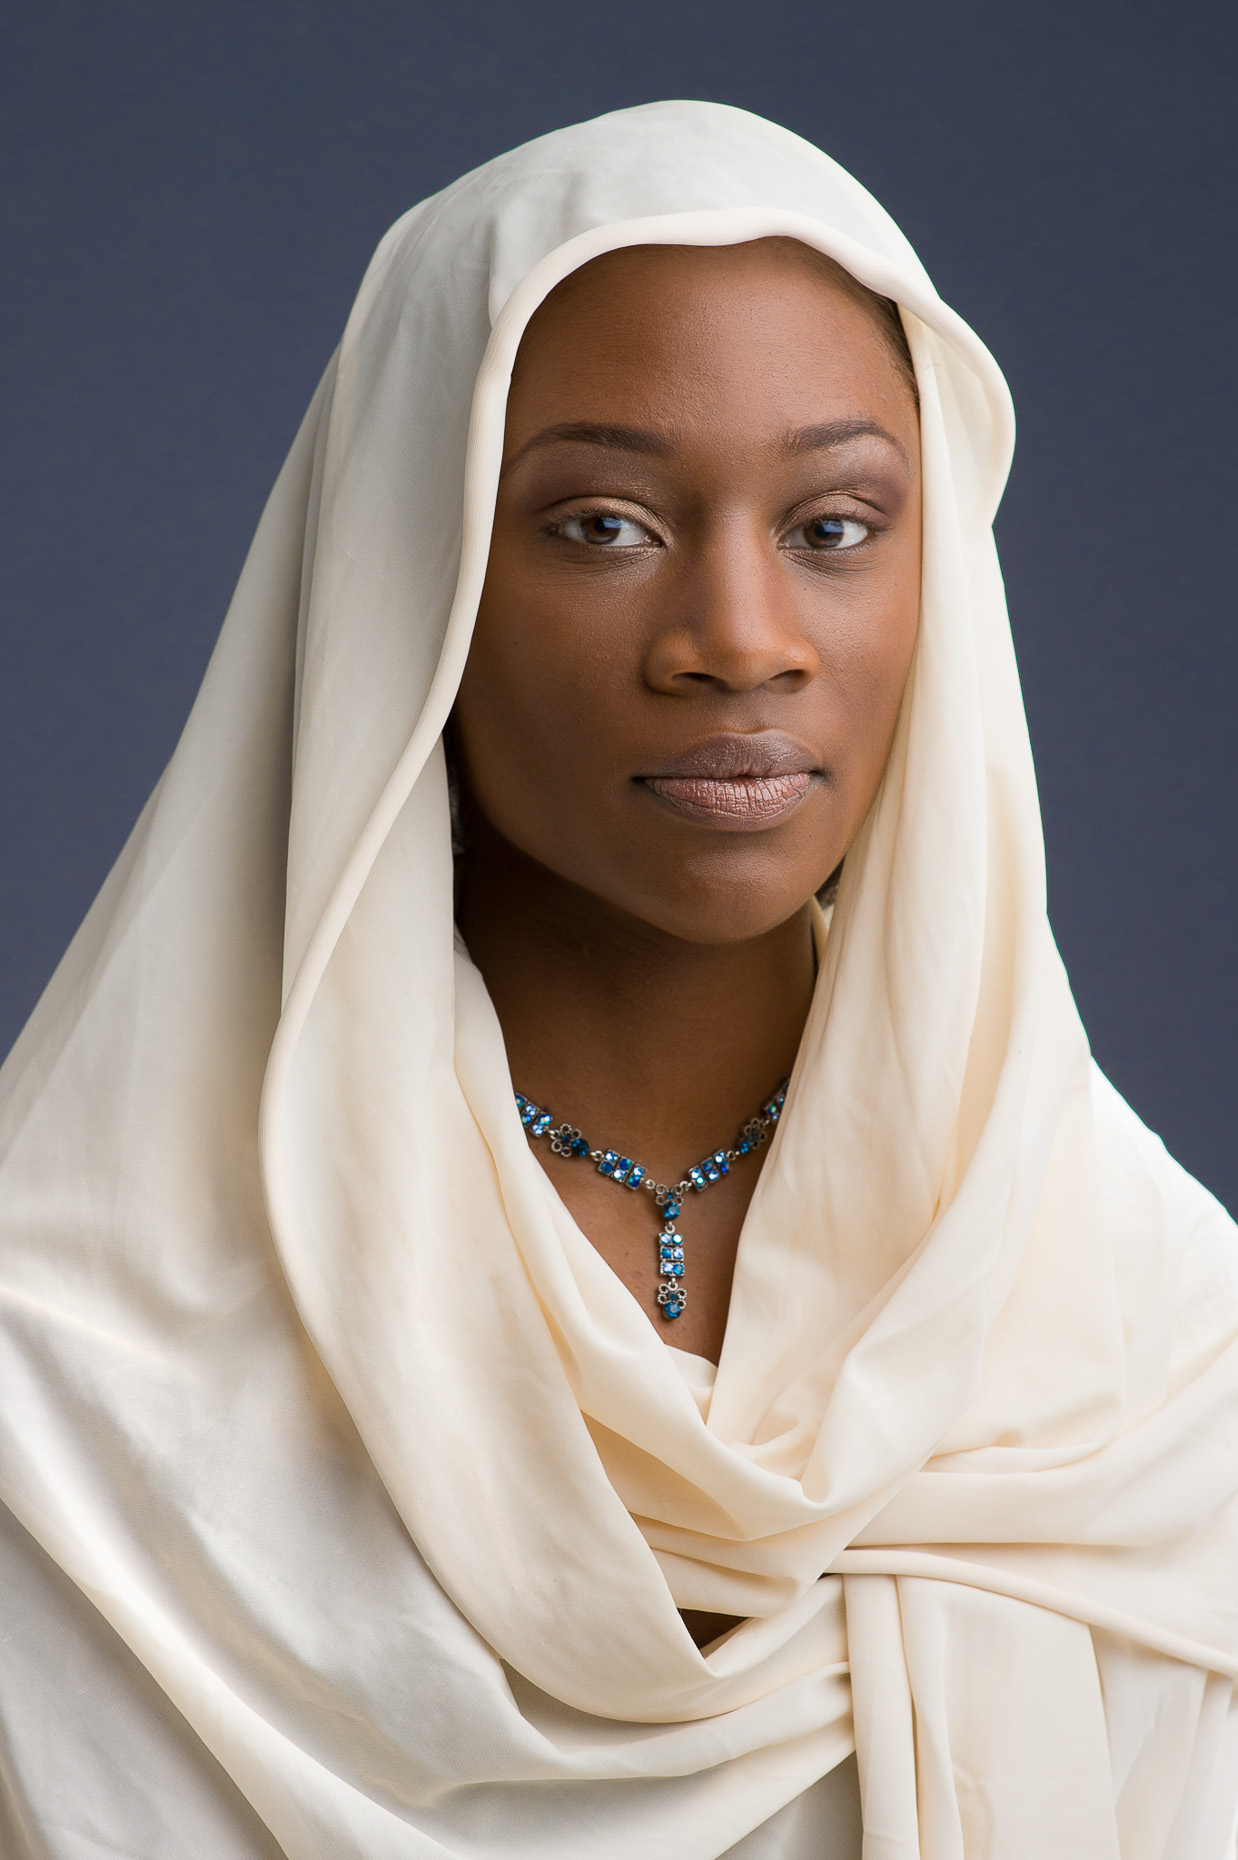 Fashion portrait of youg black woman with head scarf